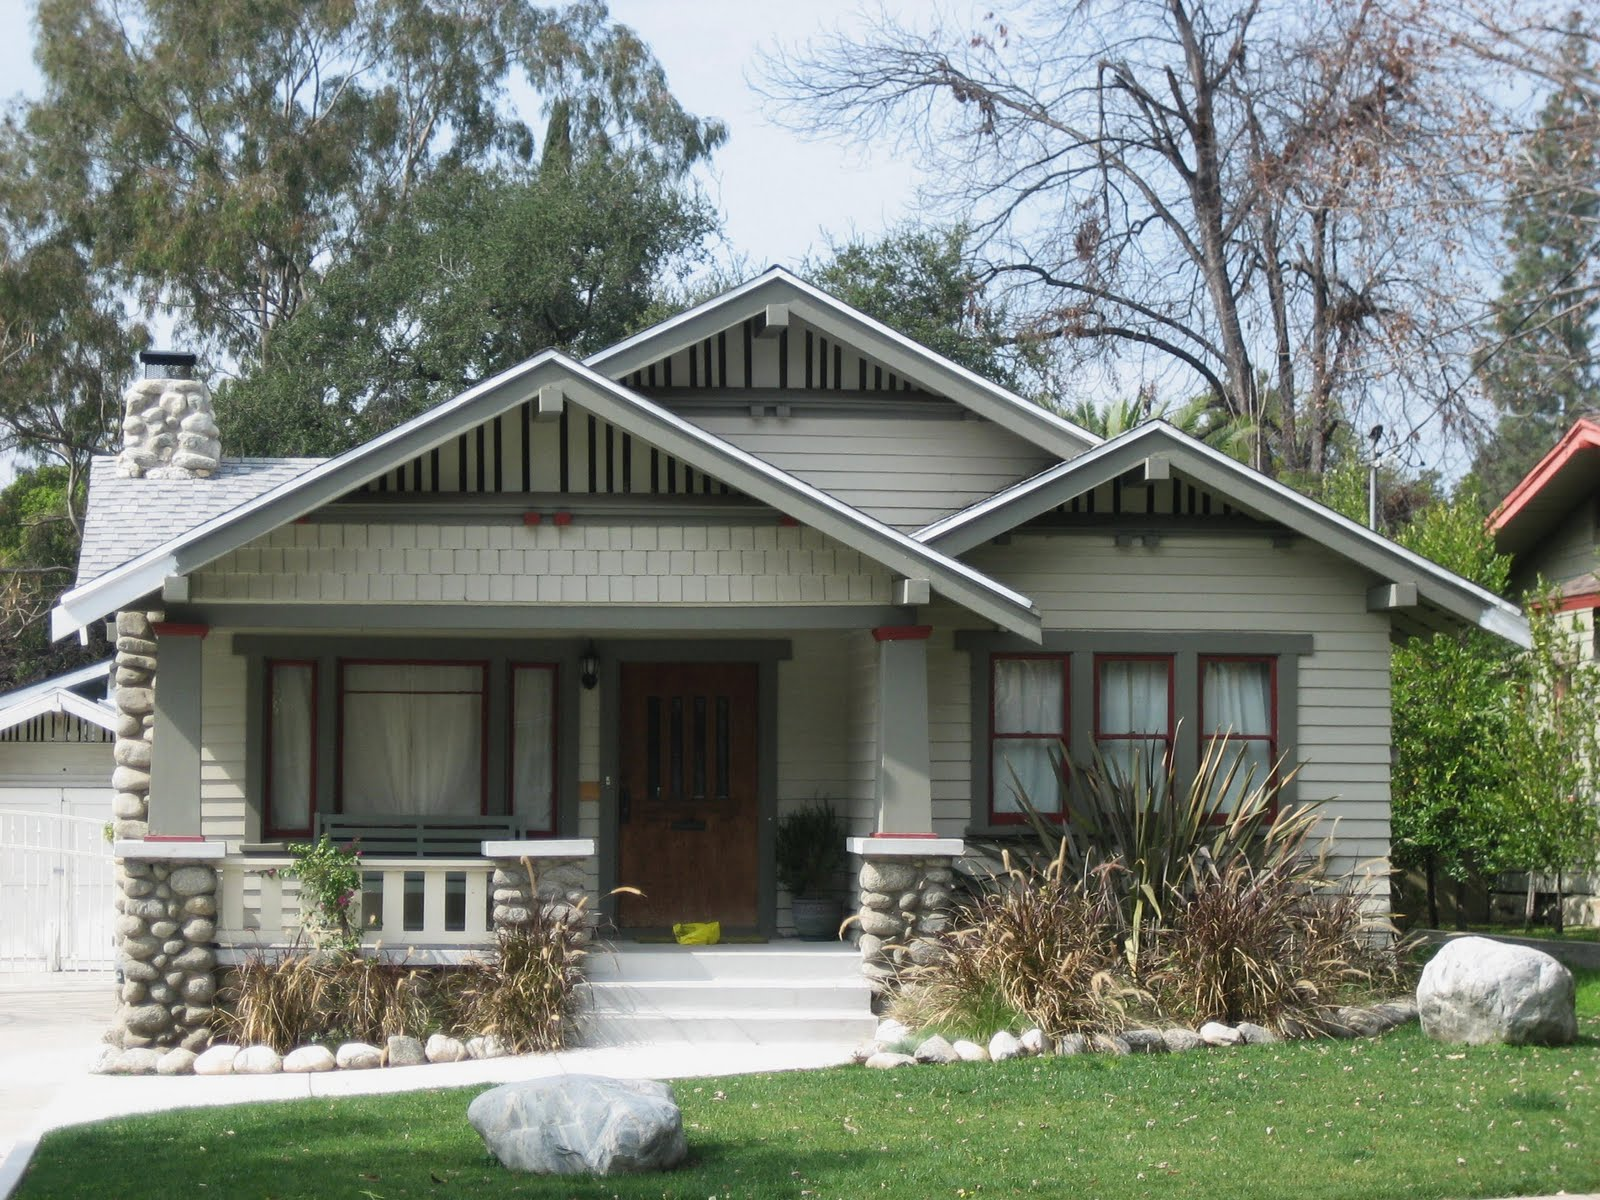 L a places bungalow heaven - What is a bungalow style home ...